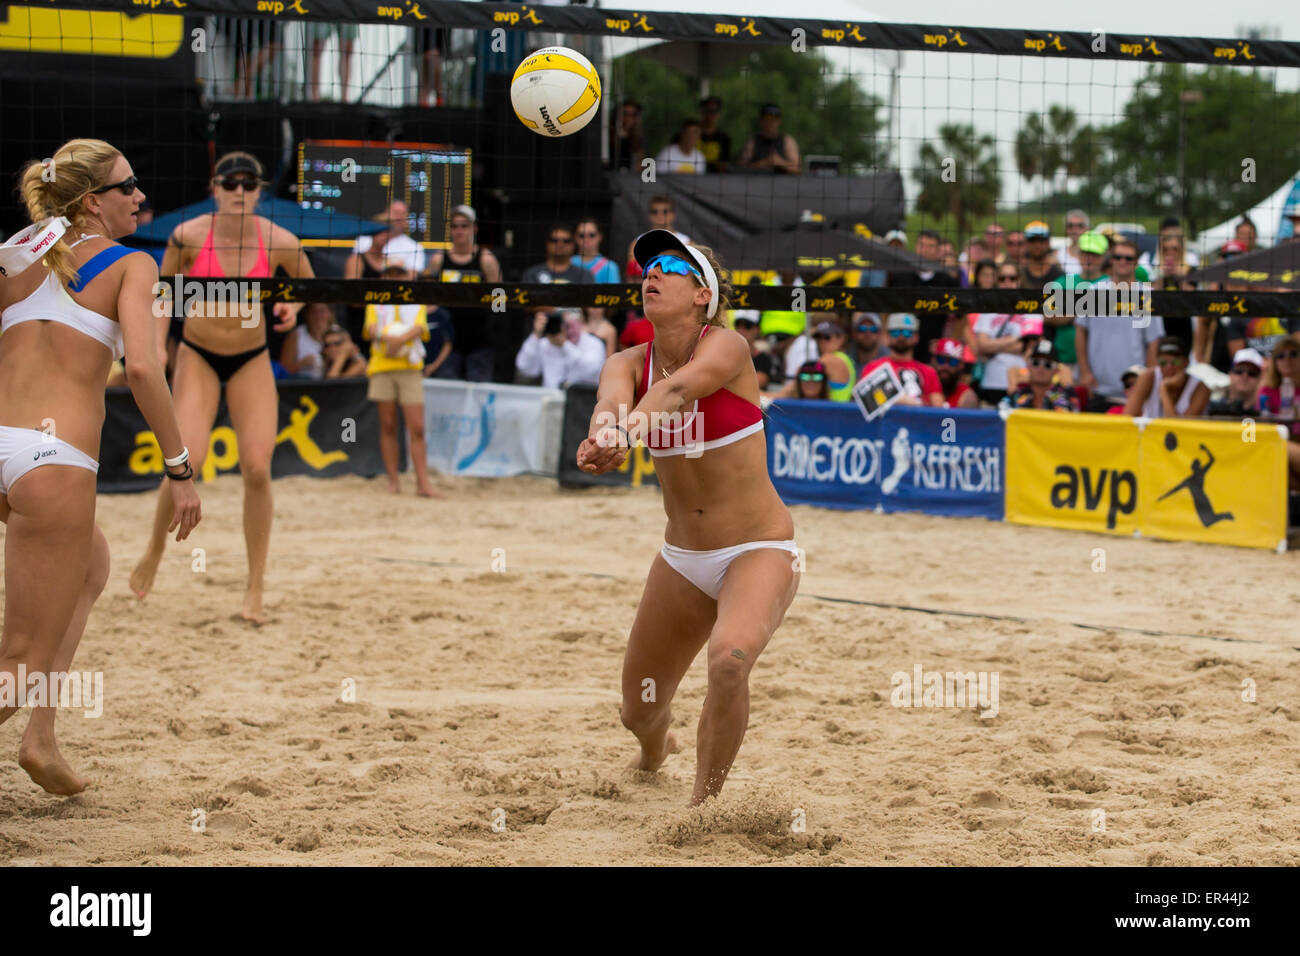 May 24, 2015 - April Ross returns the ball during the AVP New Orleans Open at Lake Pontchartrain in Kenner, LA. - Stock Image